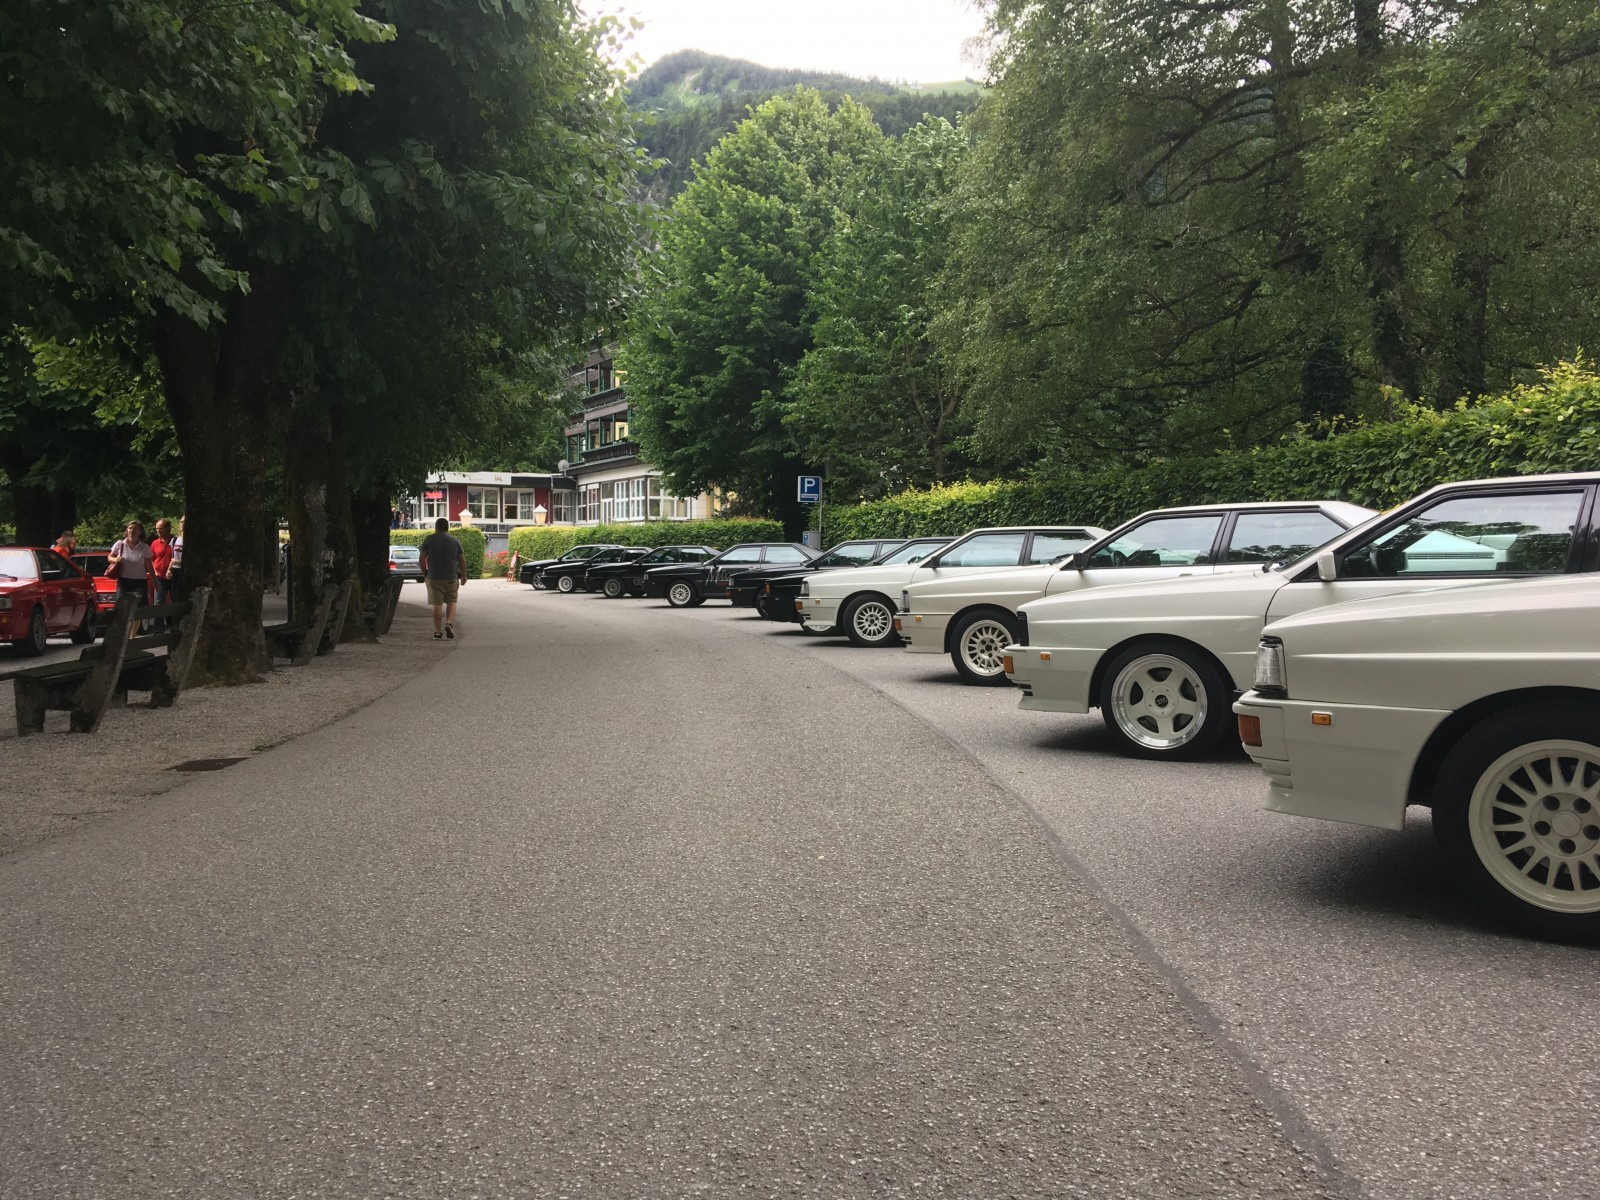 Show and Shine in St. Gilgen